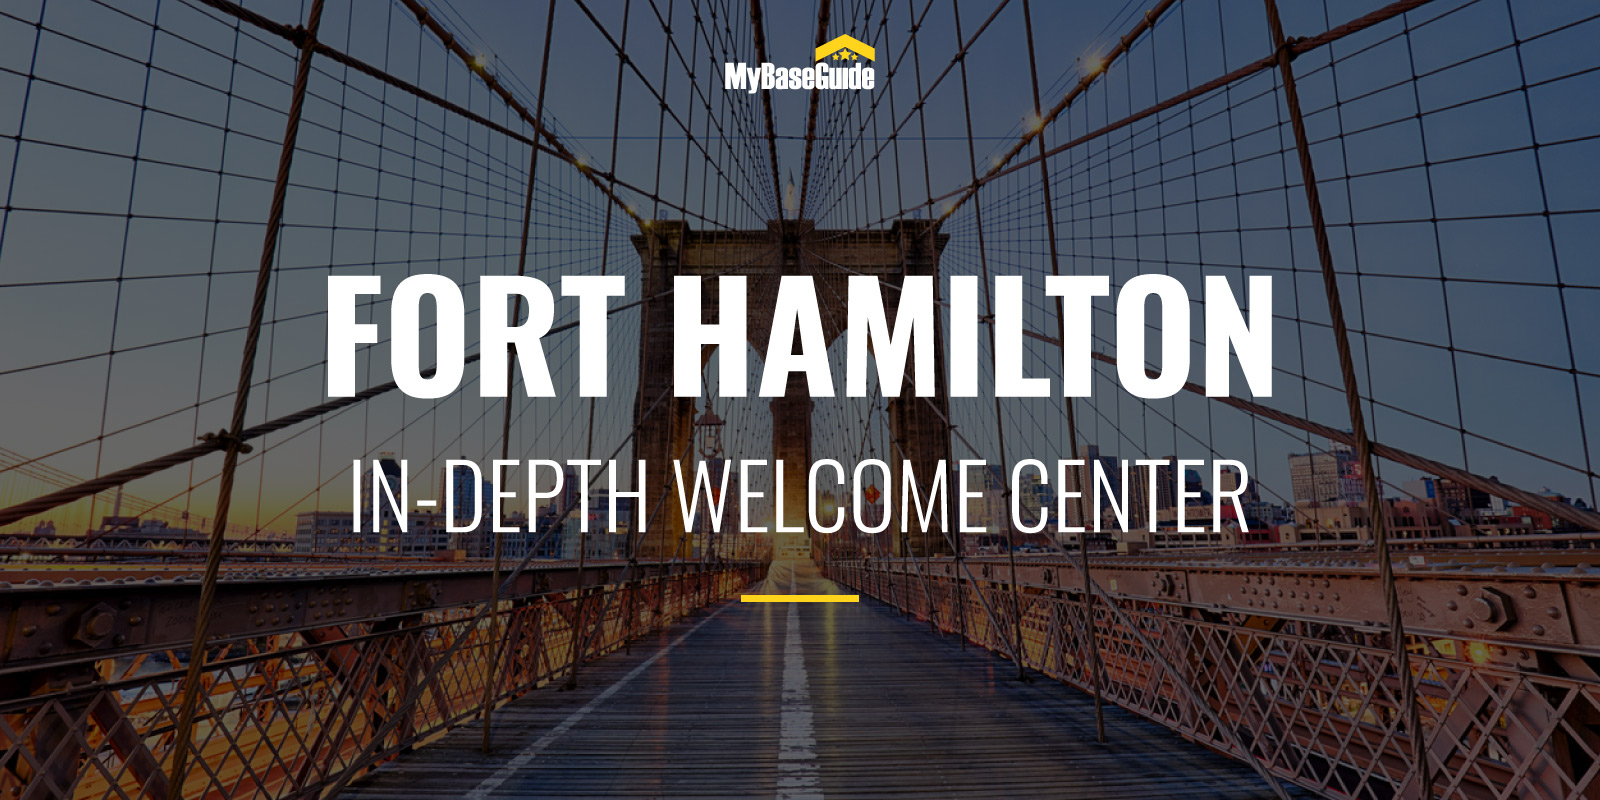 Fort Hamilton: In-Depth Welcome Center